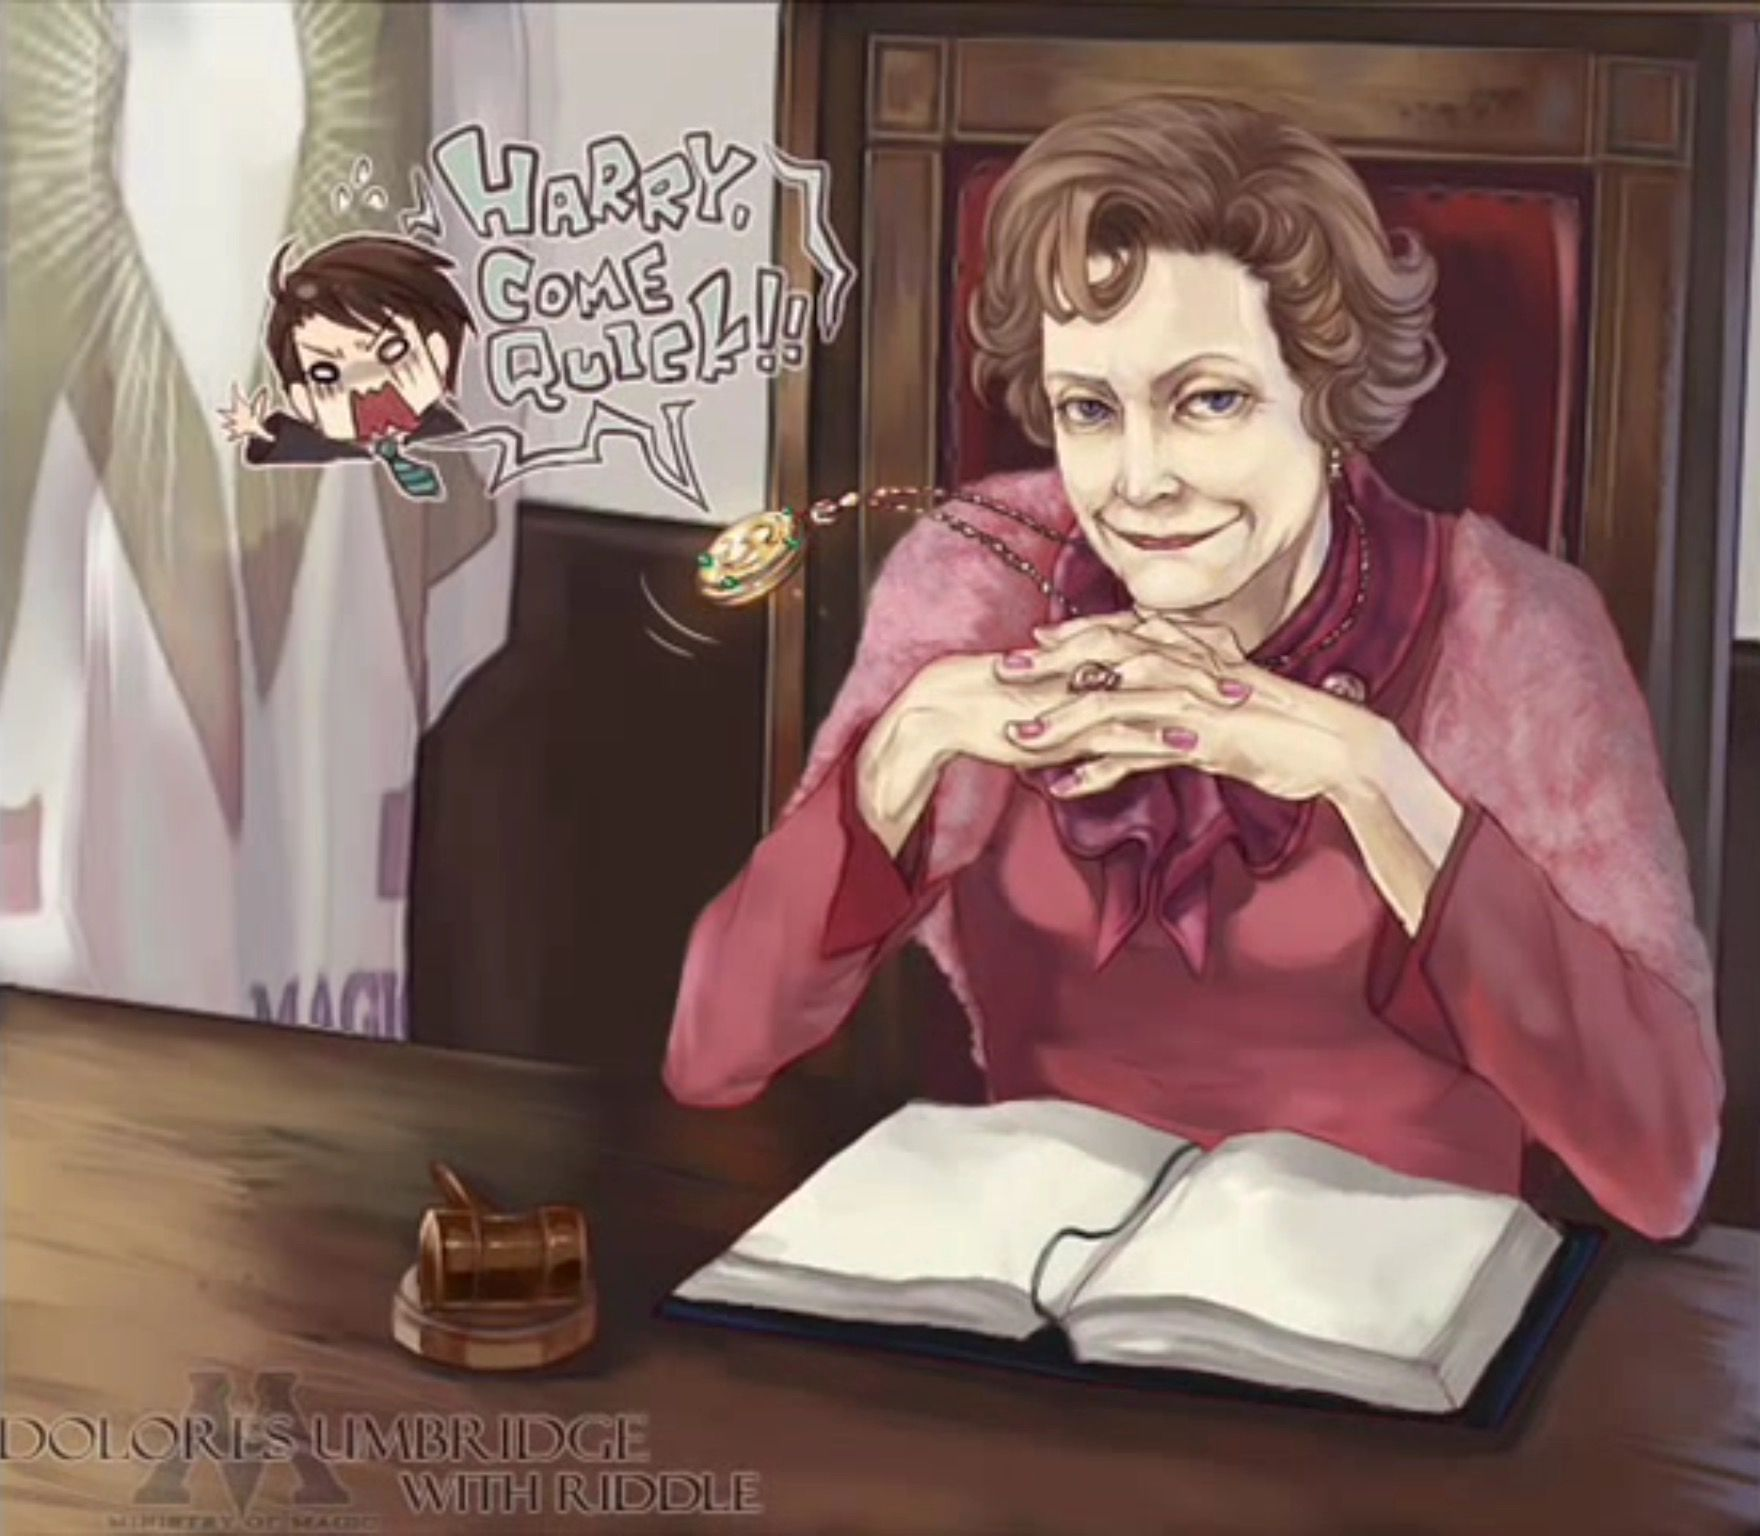 In Your Dreams A Harry X Voldemort Tom Harry Potter Anime Harry Potter Art Harry Potter Fan Art